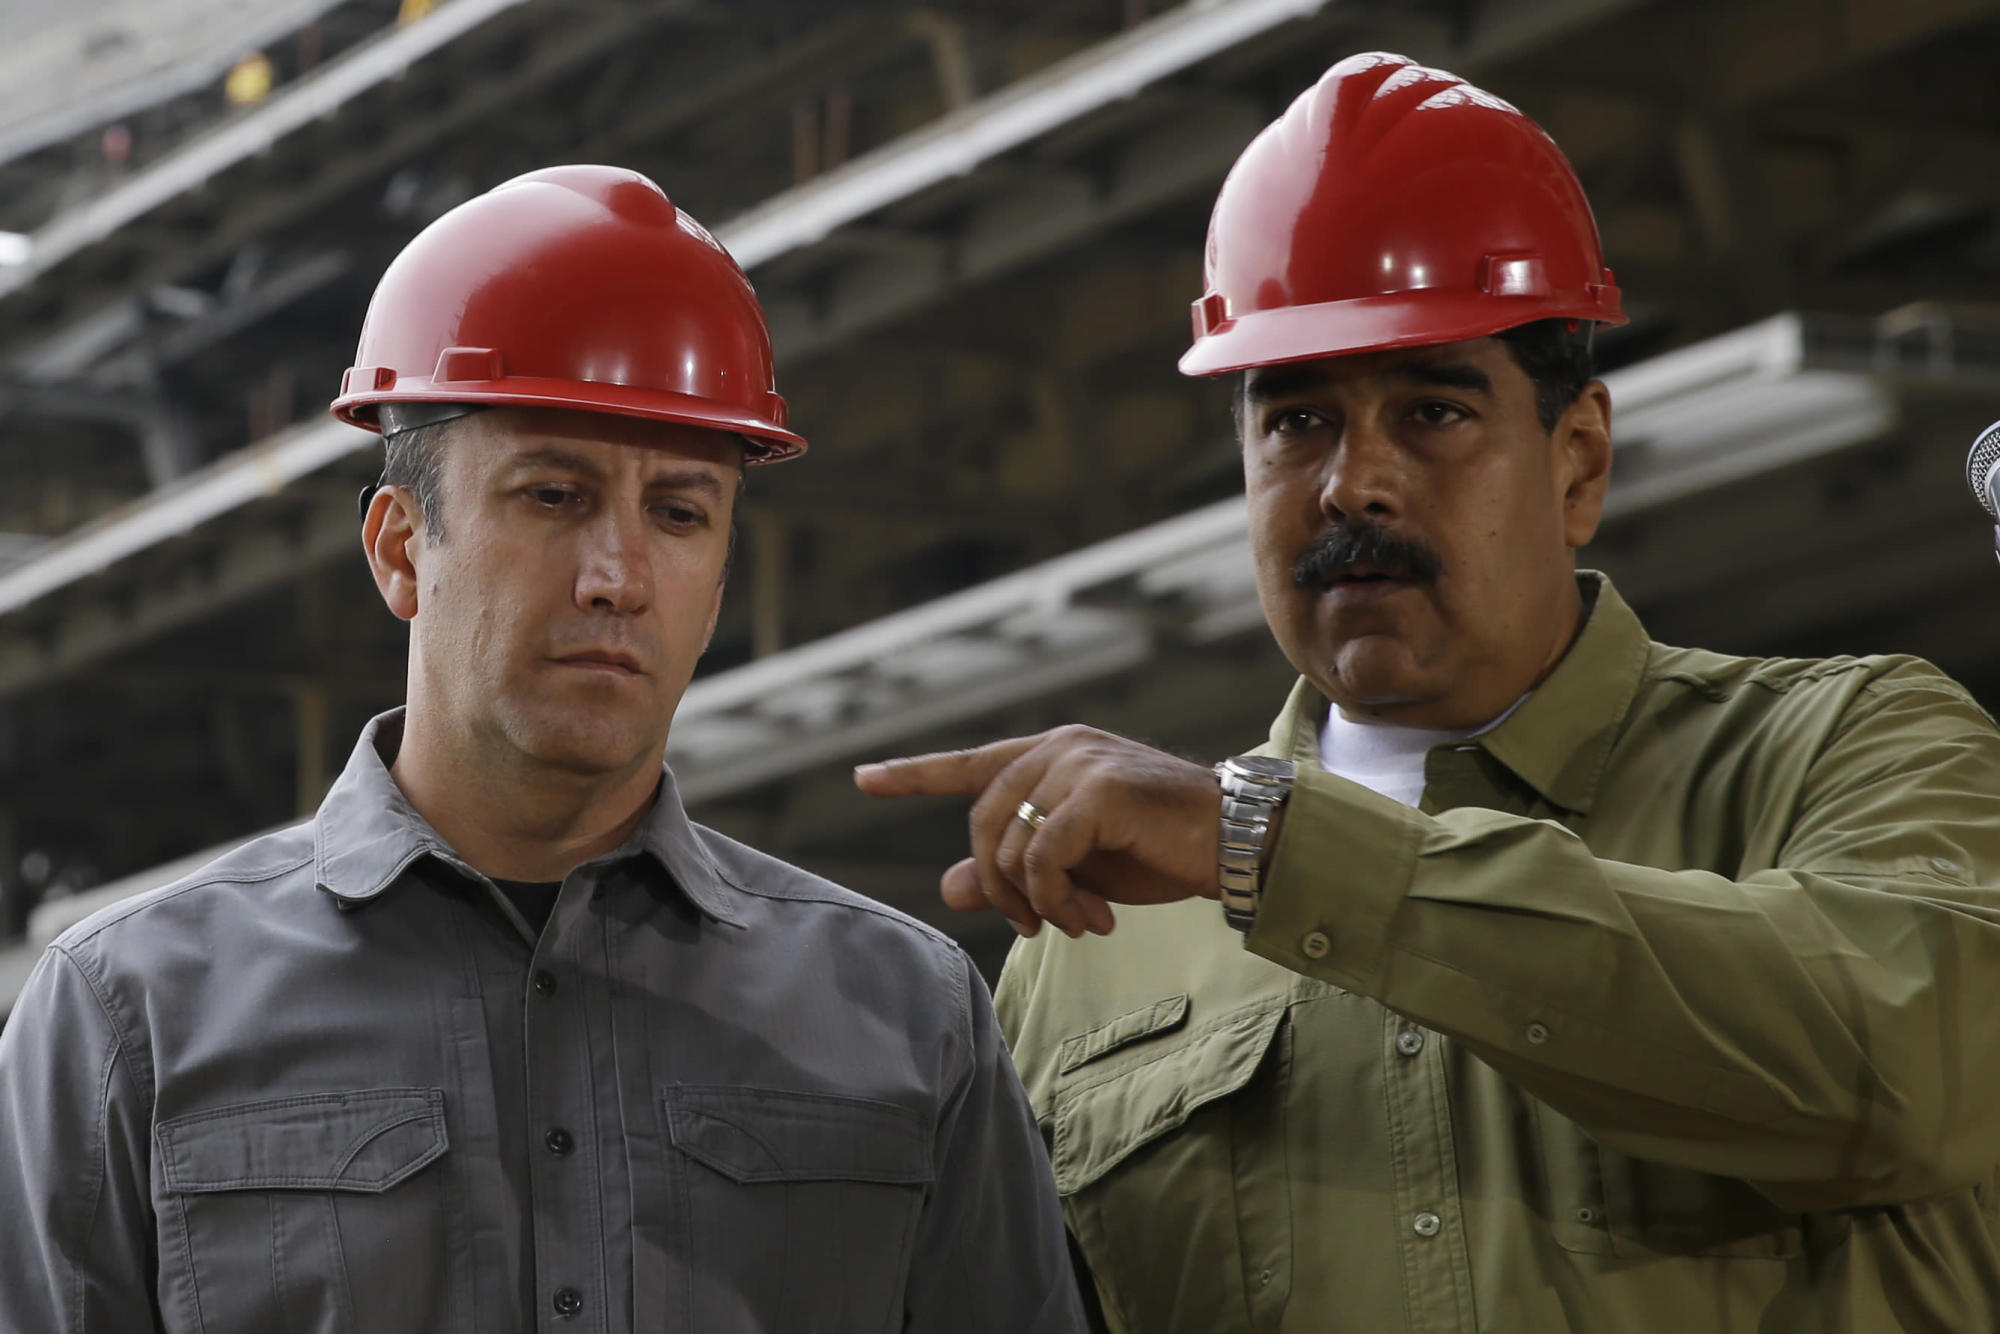 Venezuelan President Key Oil Refinery Attacked 2 Detained